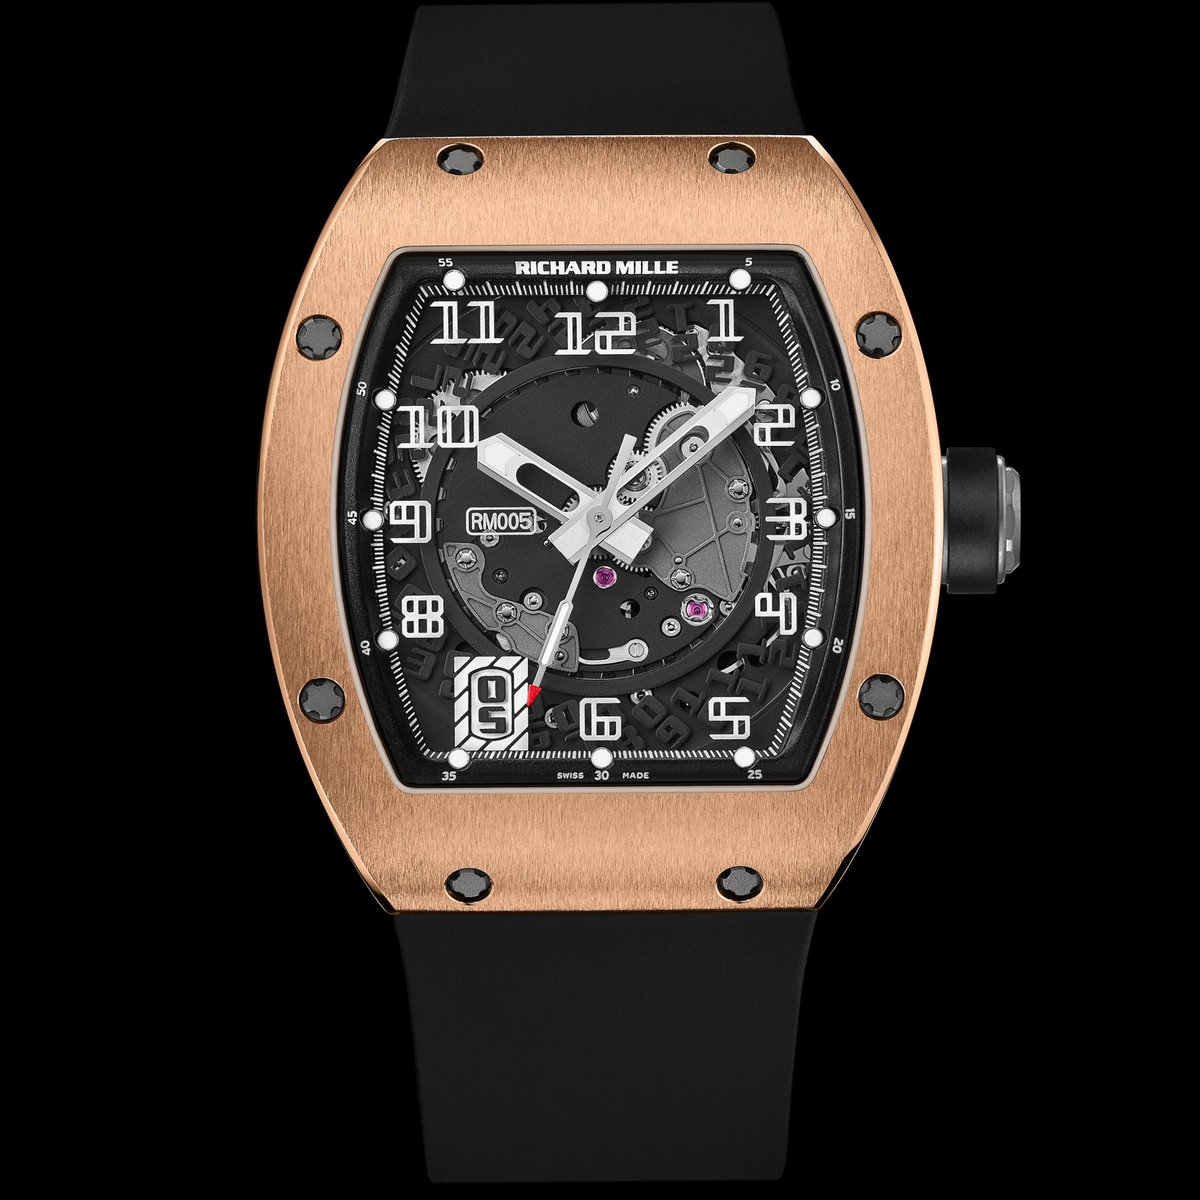 #Historicalmodels Launched in 2004, the RM 005 is a timeless and universal model. Its contemporary features are instantly recognizable as a pure #RichardMille product. https://t.co/sNNLmzaT7K